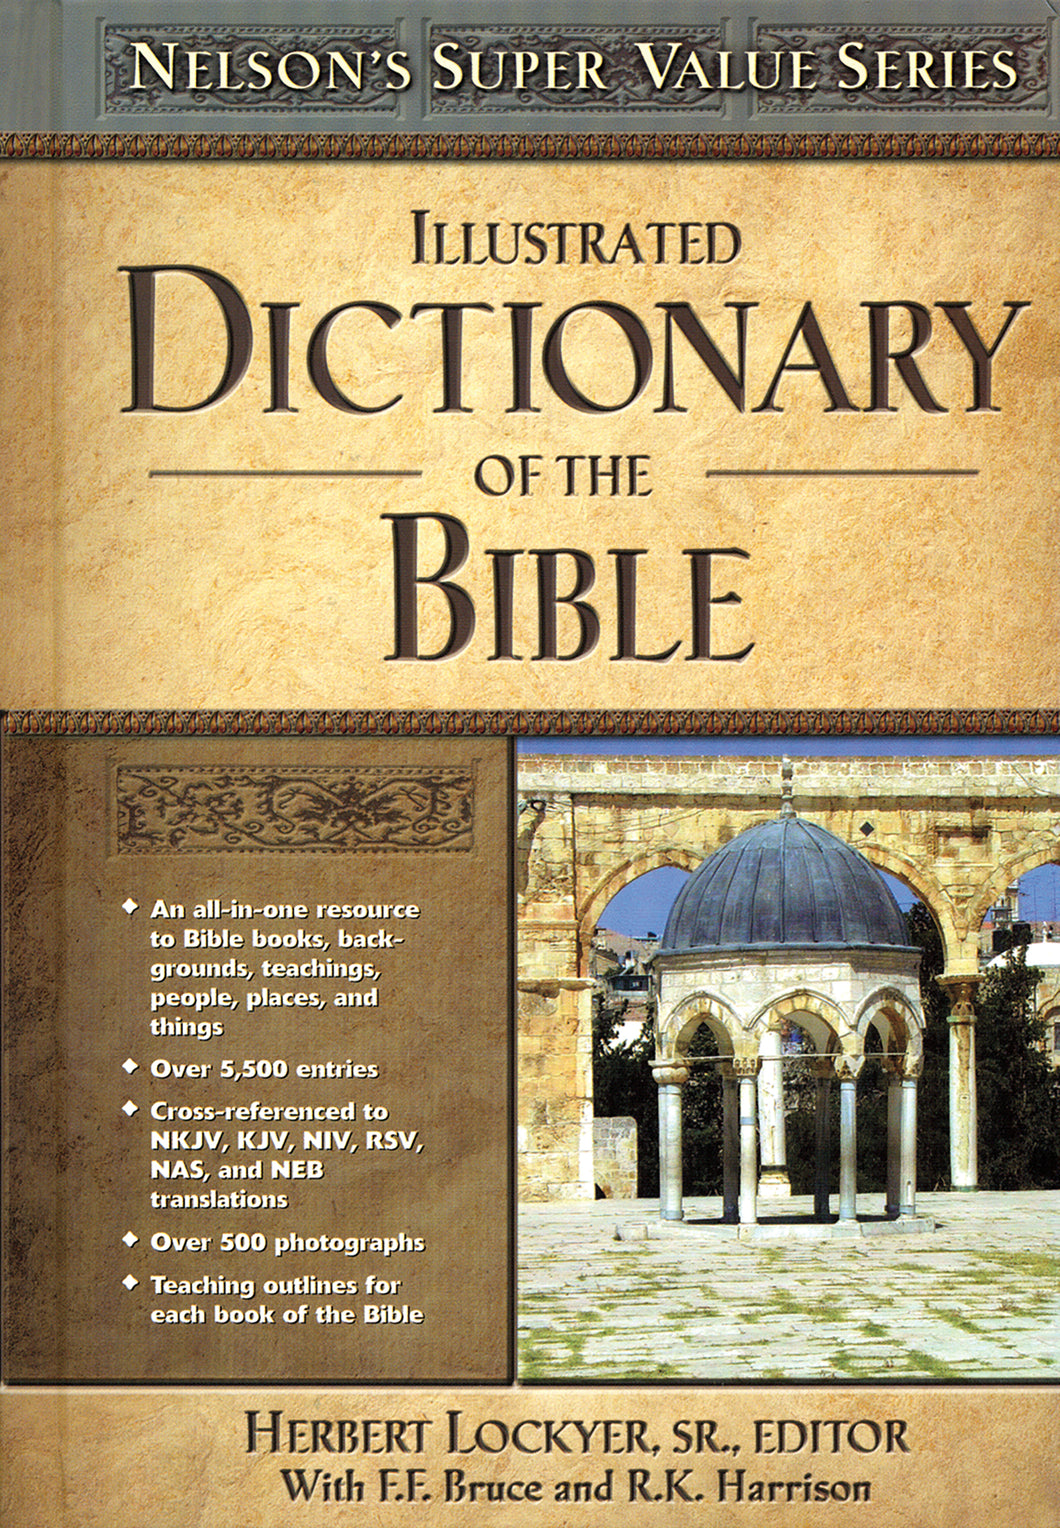 Illustrated Dictionary of the Bible — Hardcover